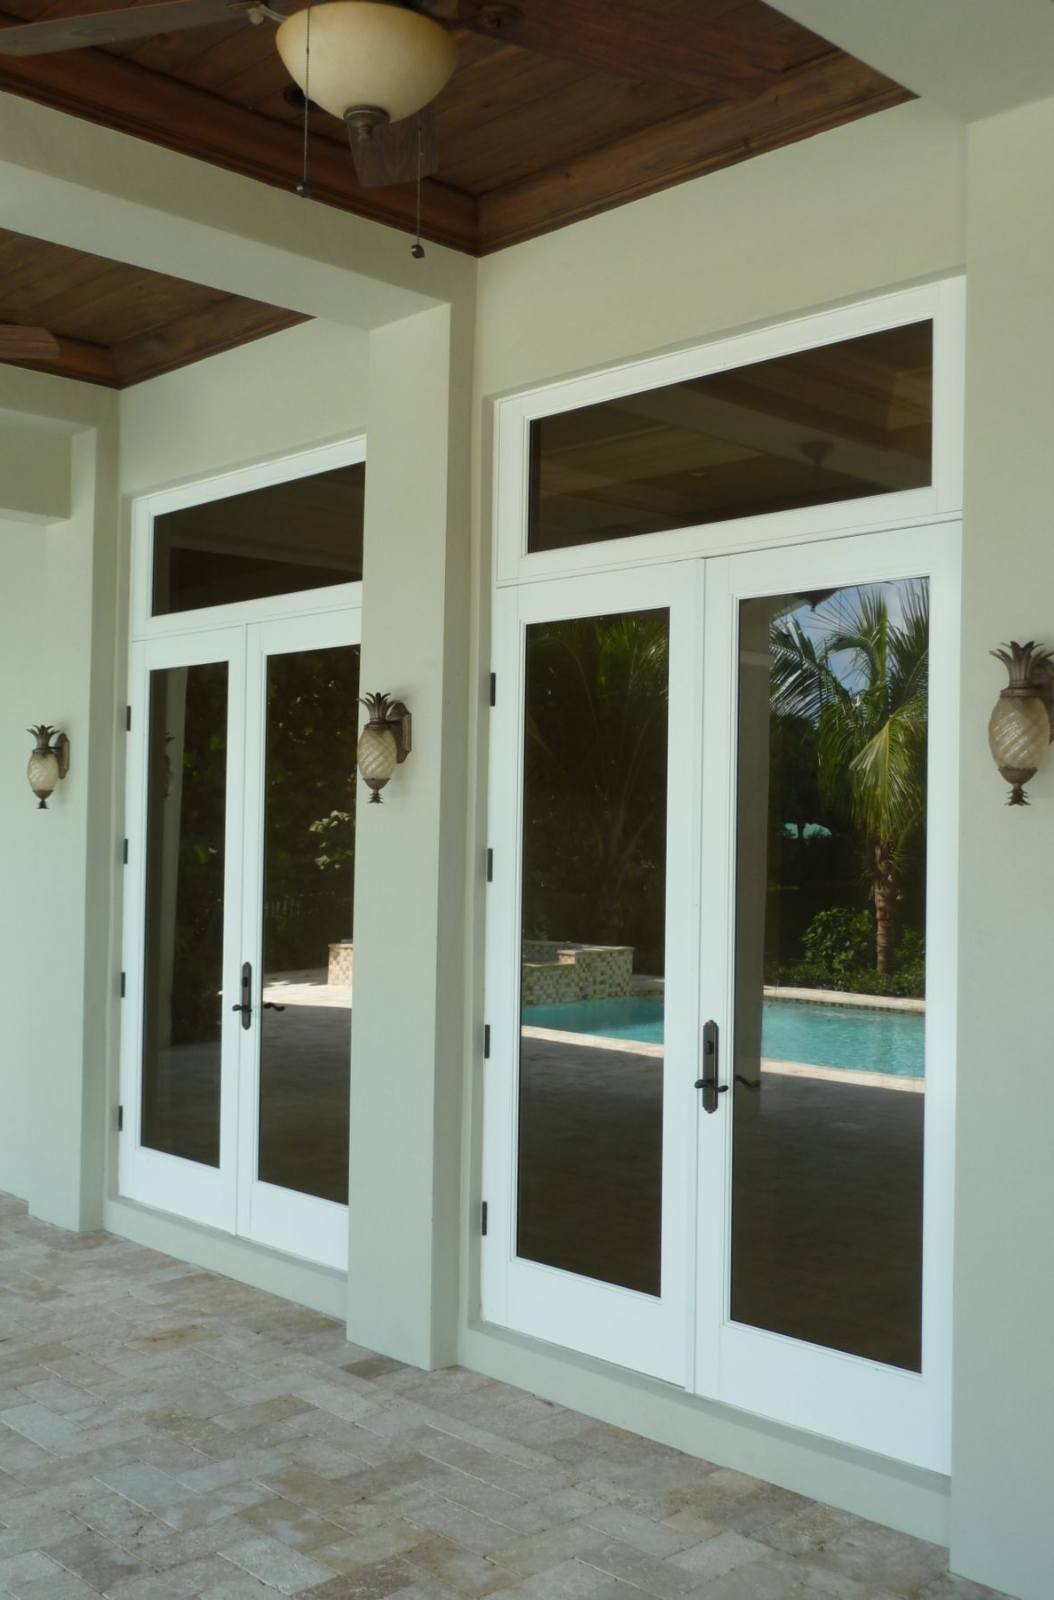 Shatter Resistant Durability A Unique Look And Noise Reduction Are Just Some Of The Ingredients That M Luxe Interiors Windows And Doors Interior And Exterior